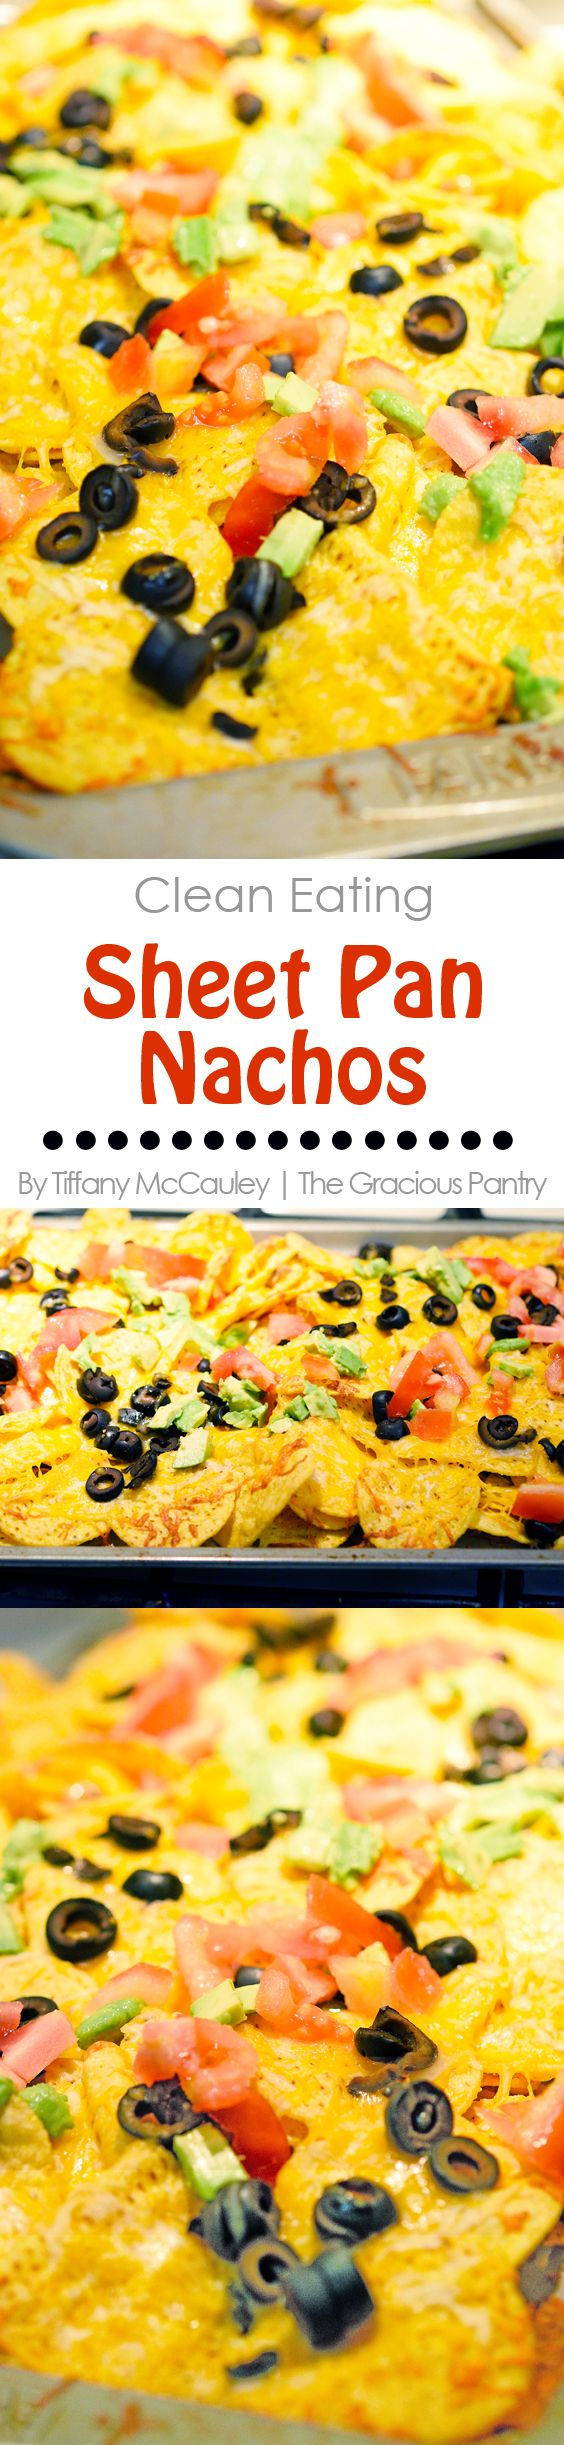 157 best clean eating vegetarian recipes images on pinterest clean eating recipes sheet pan nachos recipe nachos recipe nachos mexican food forumfinder Gallery